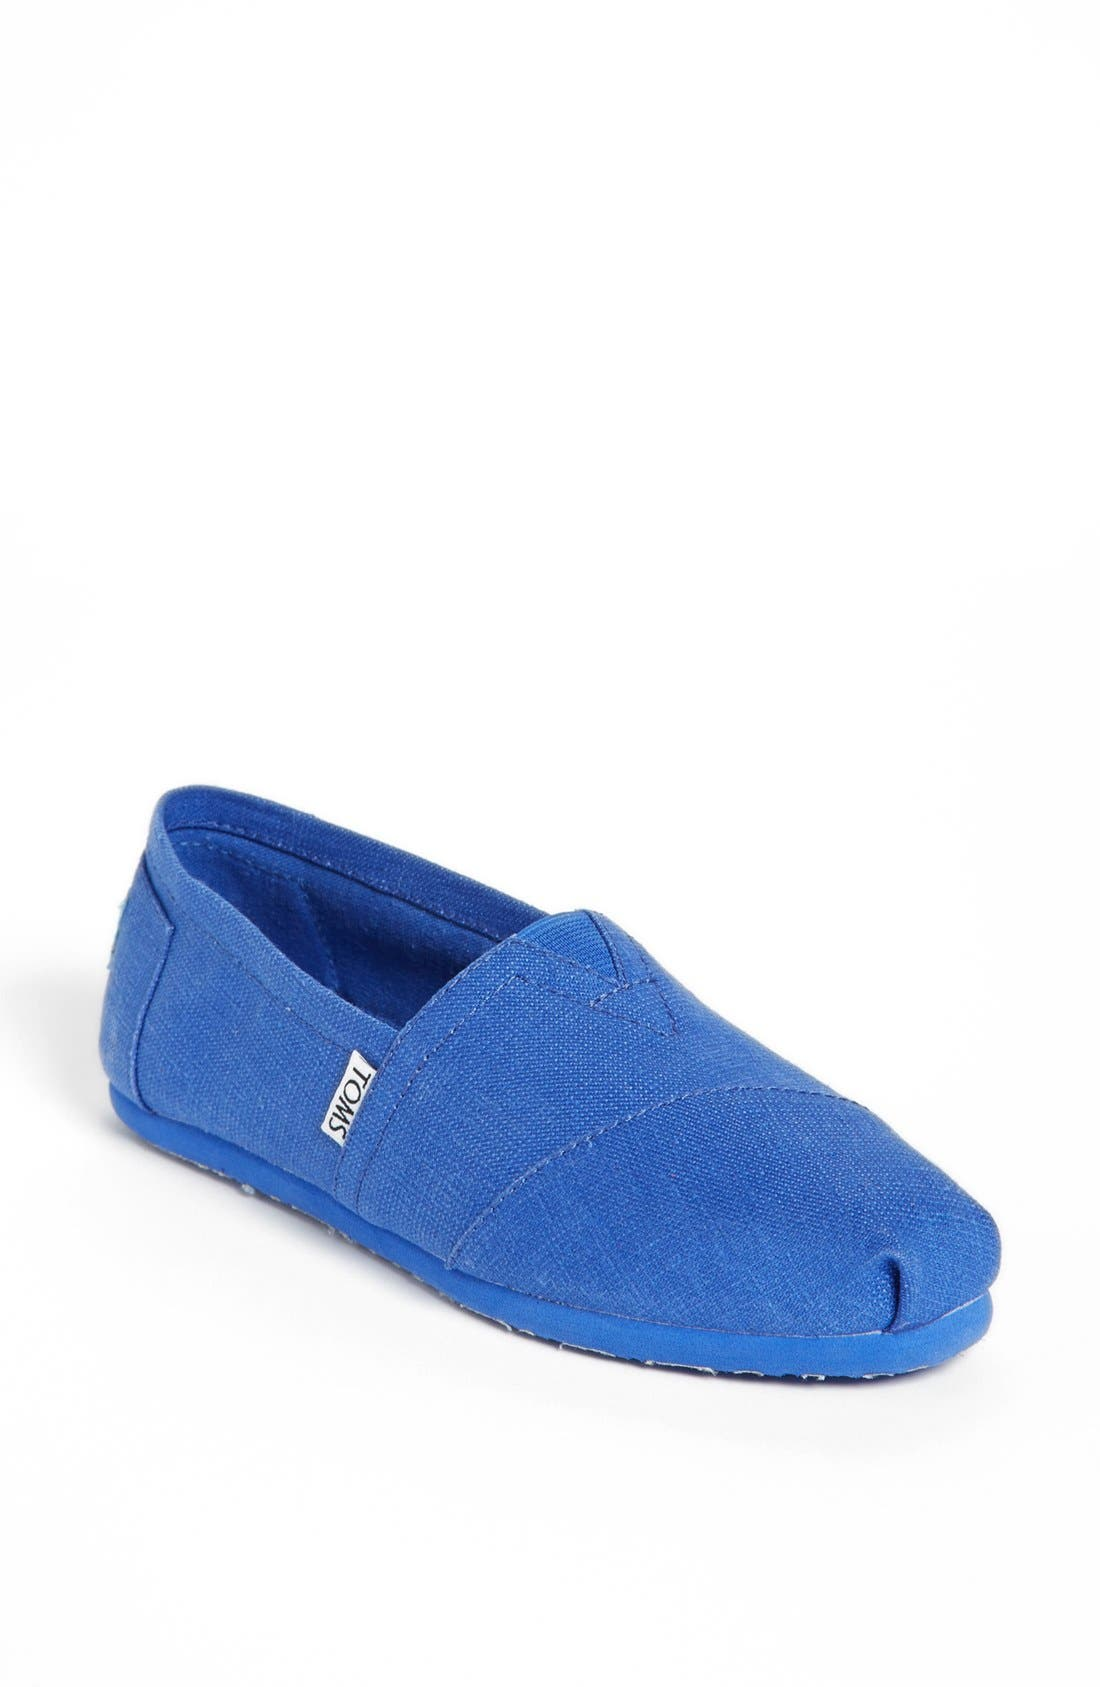 Alternate Image 1 Selected - TOMS 'Classic - Earthwise' Vegan Slip-On (Women)